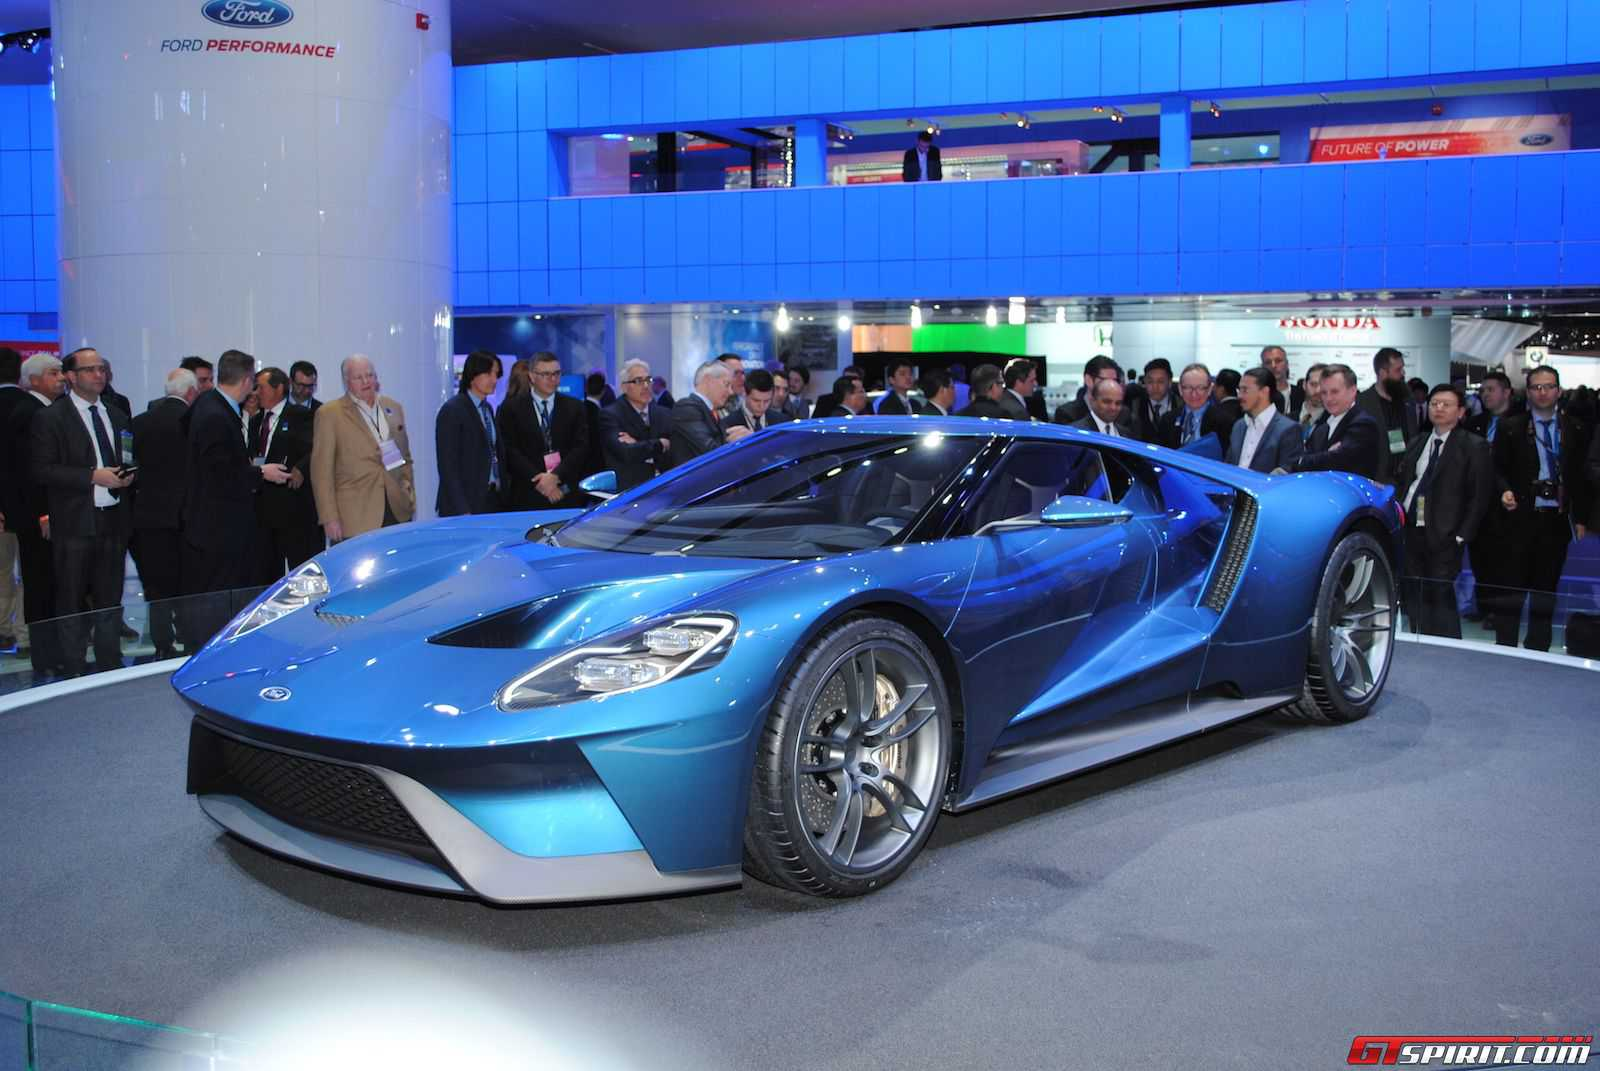 Ford Considered Hybrid Powertrain For New Gt